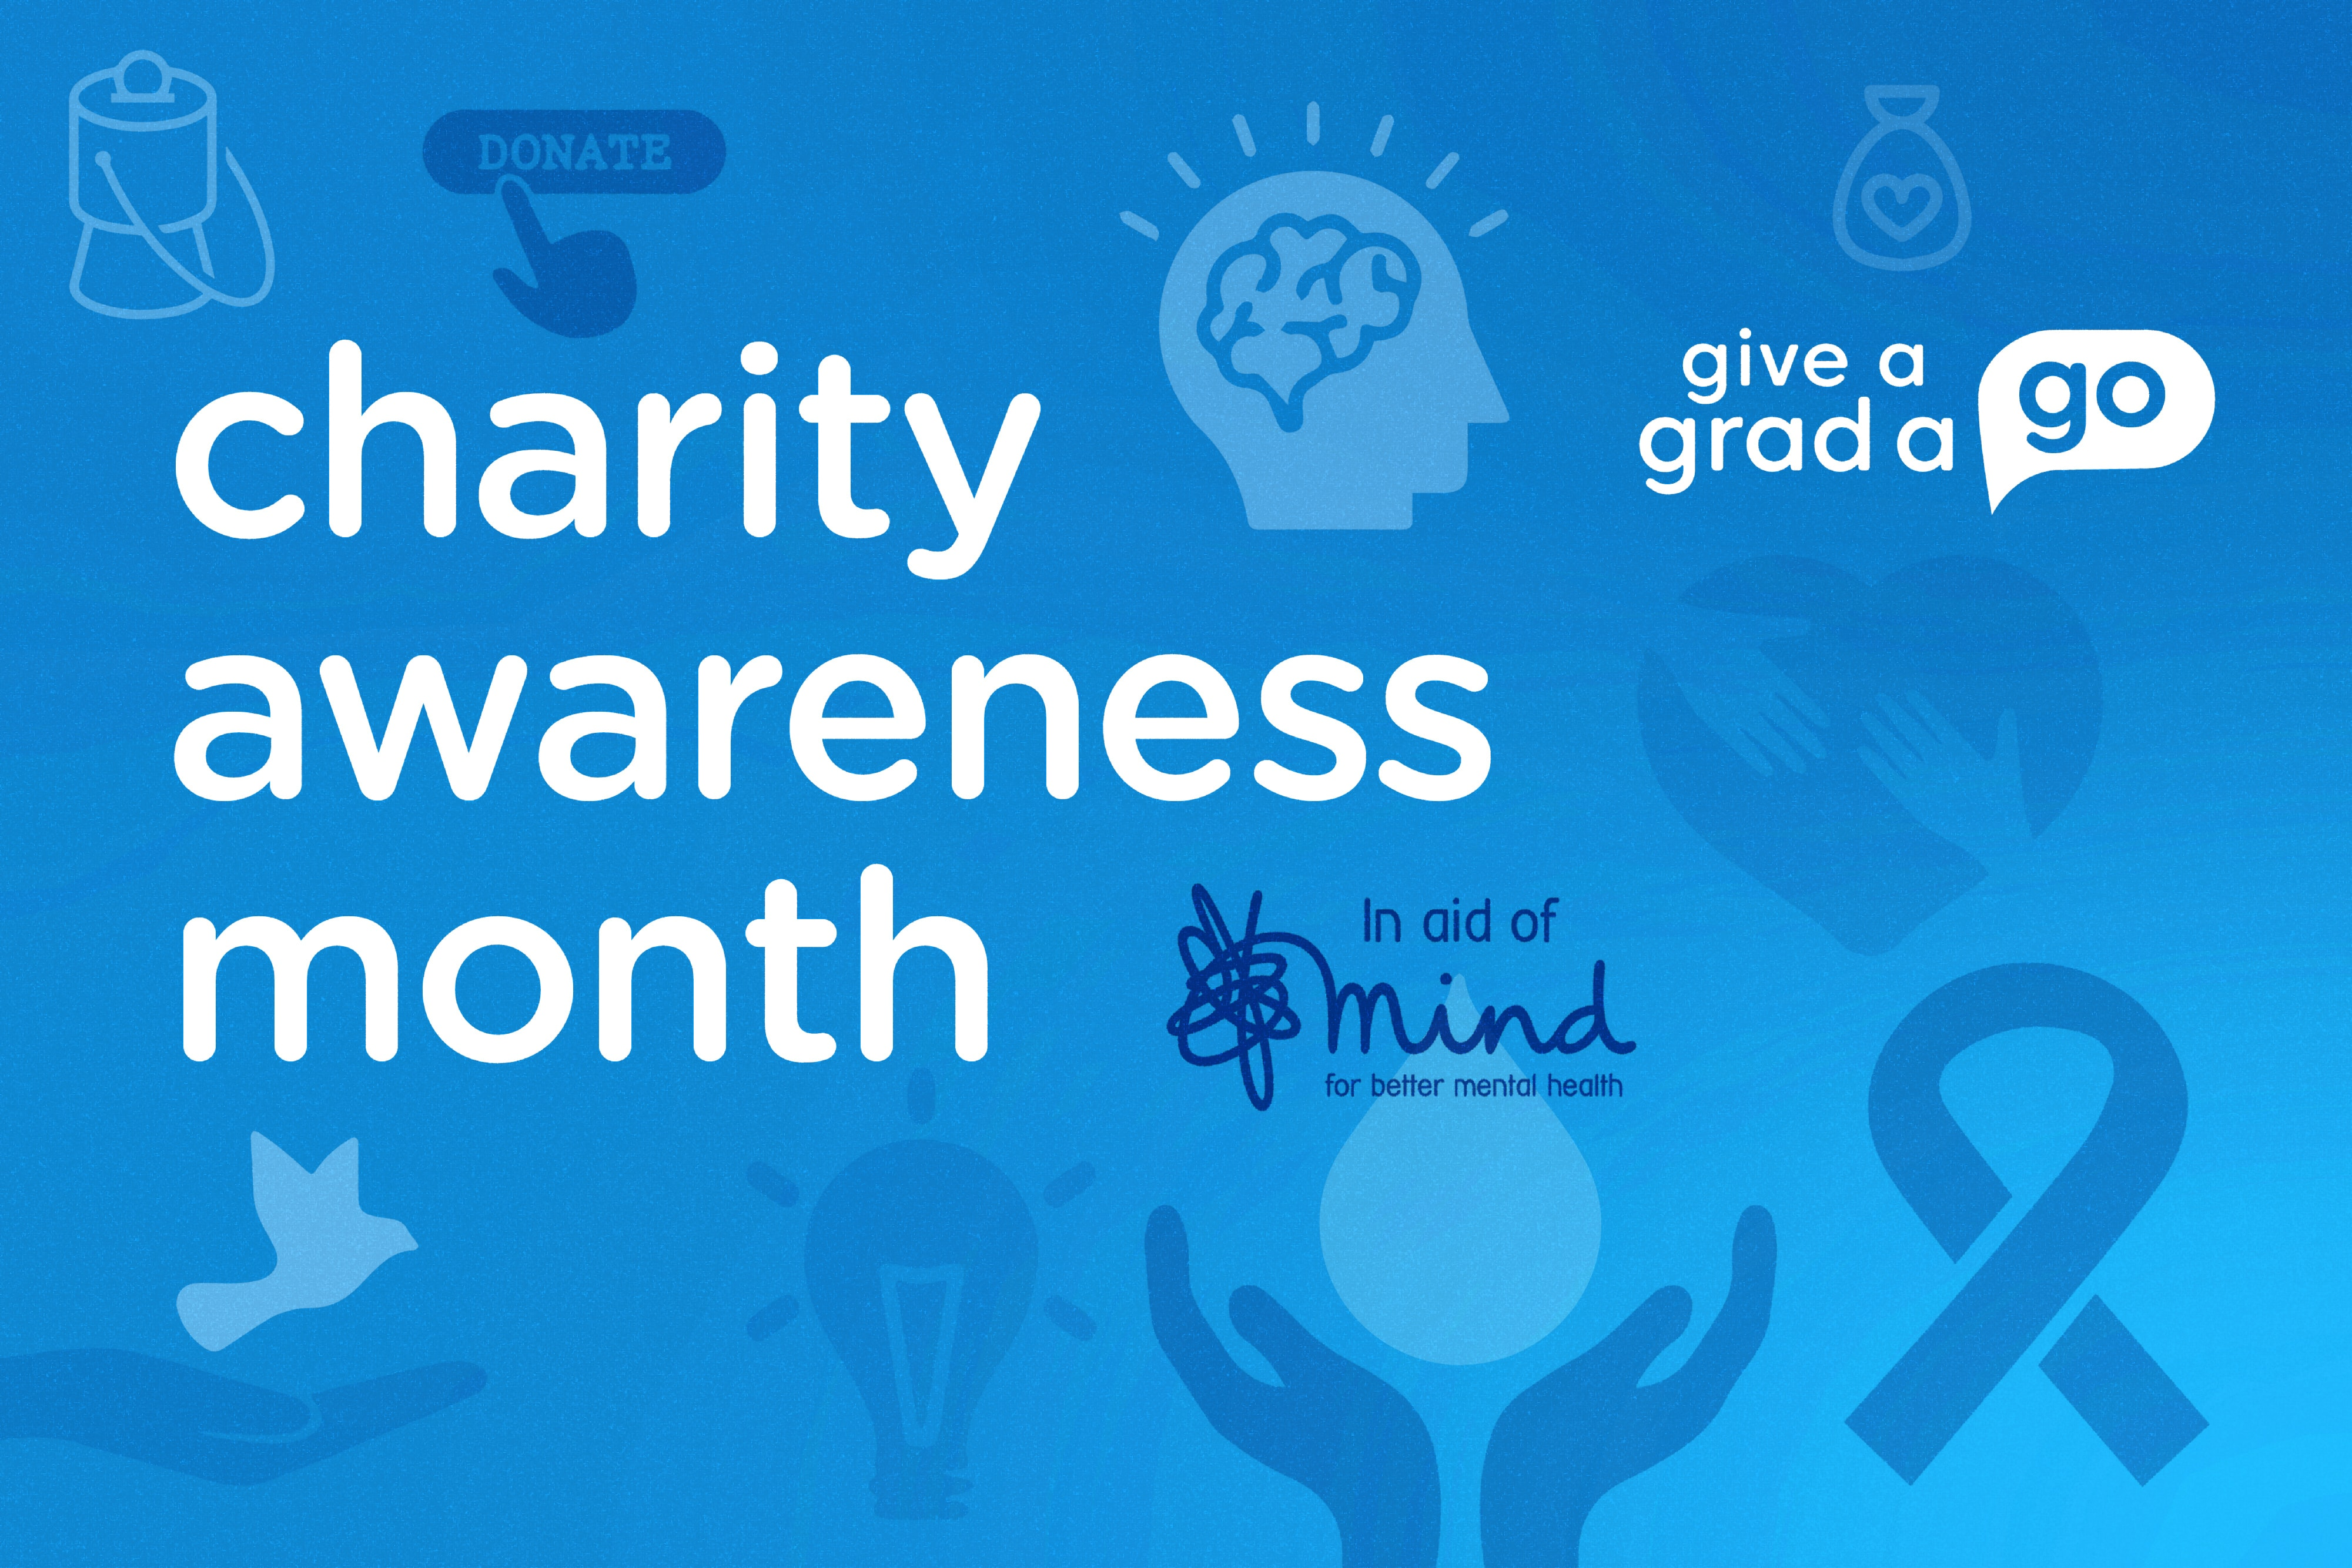 Give A Grad A Go charity awareness month